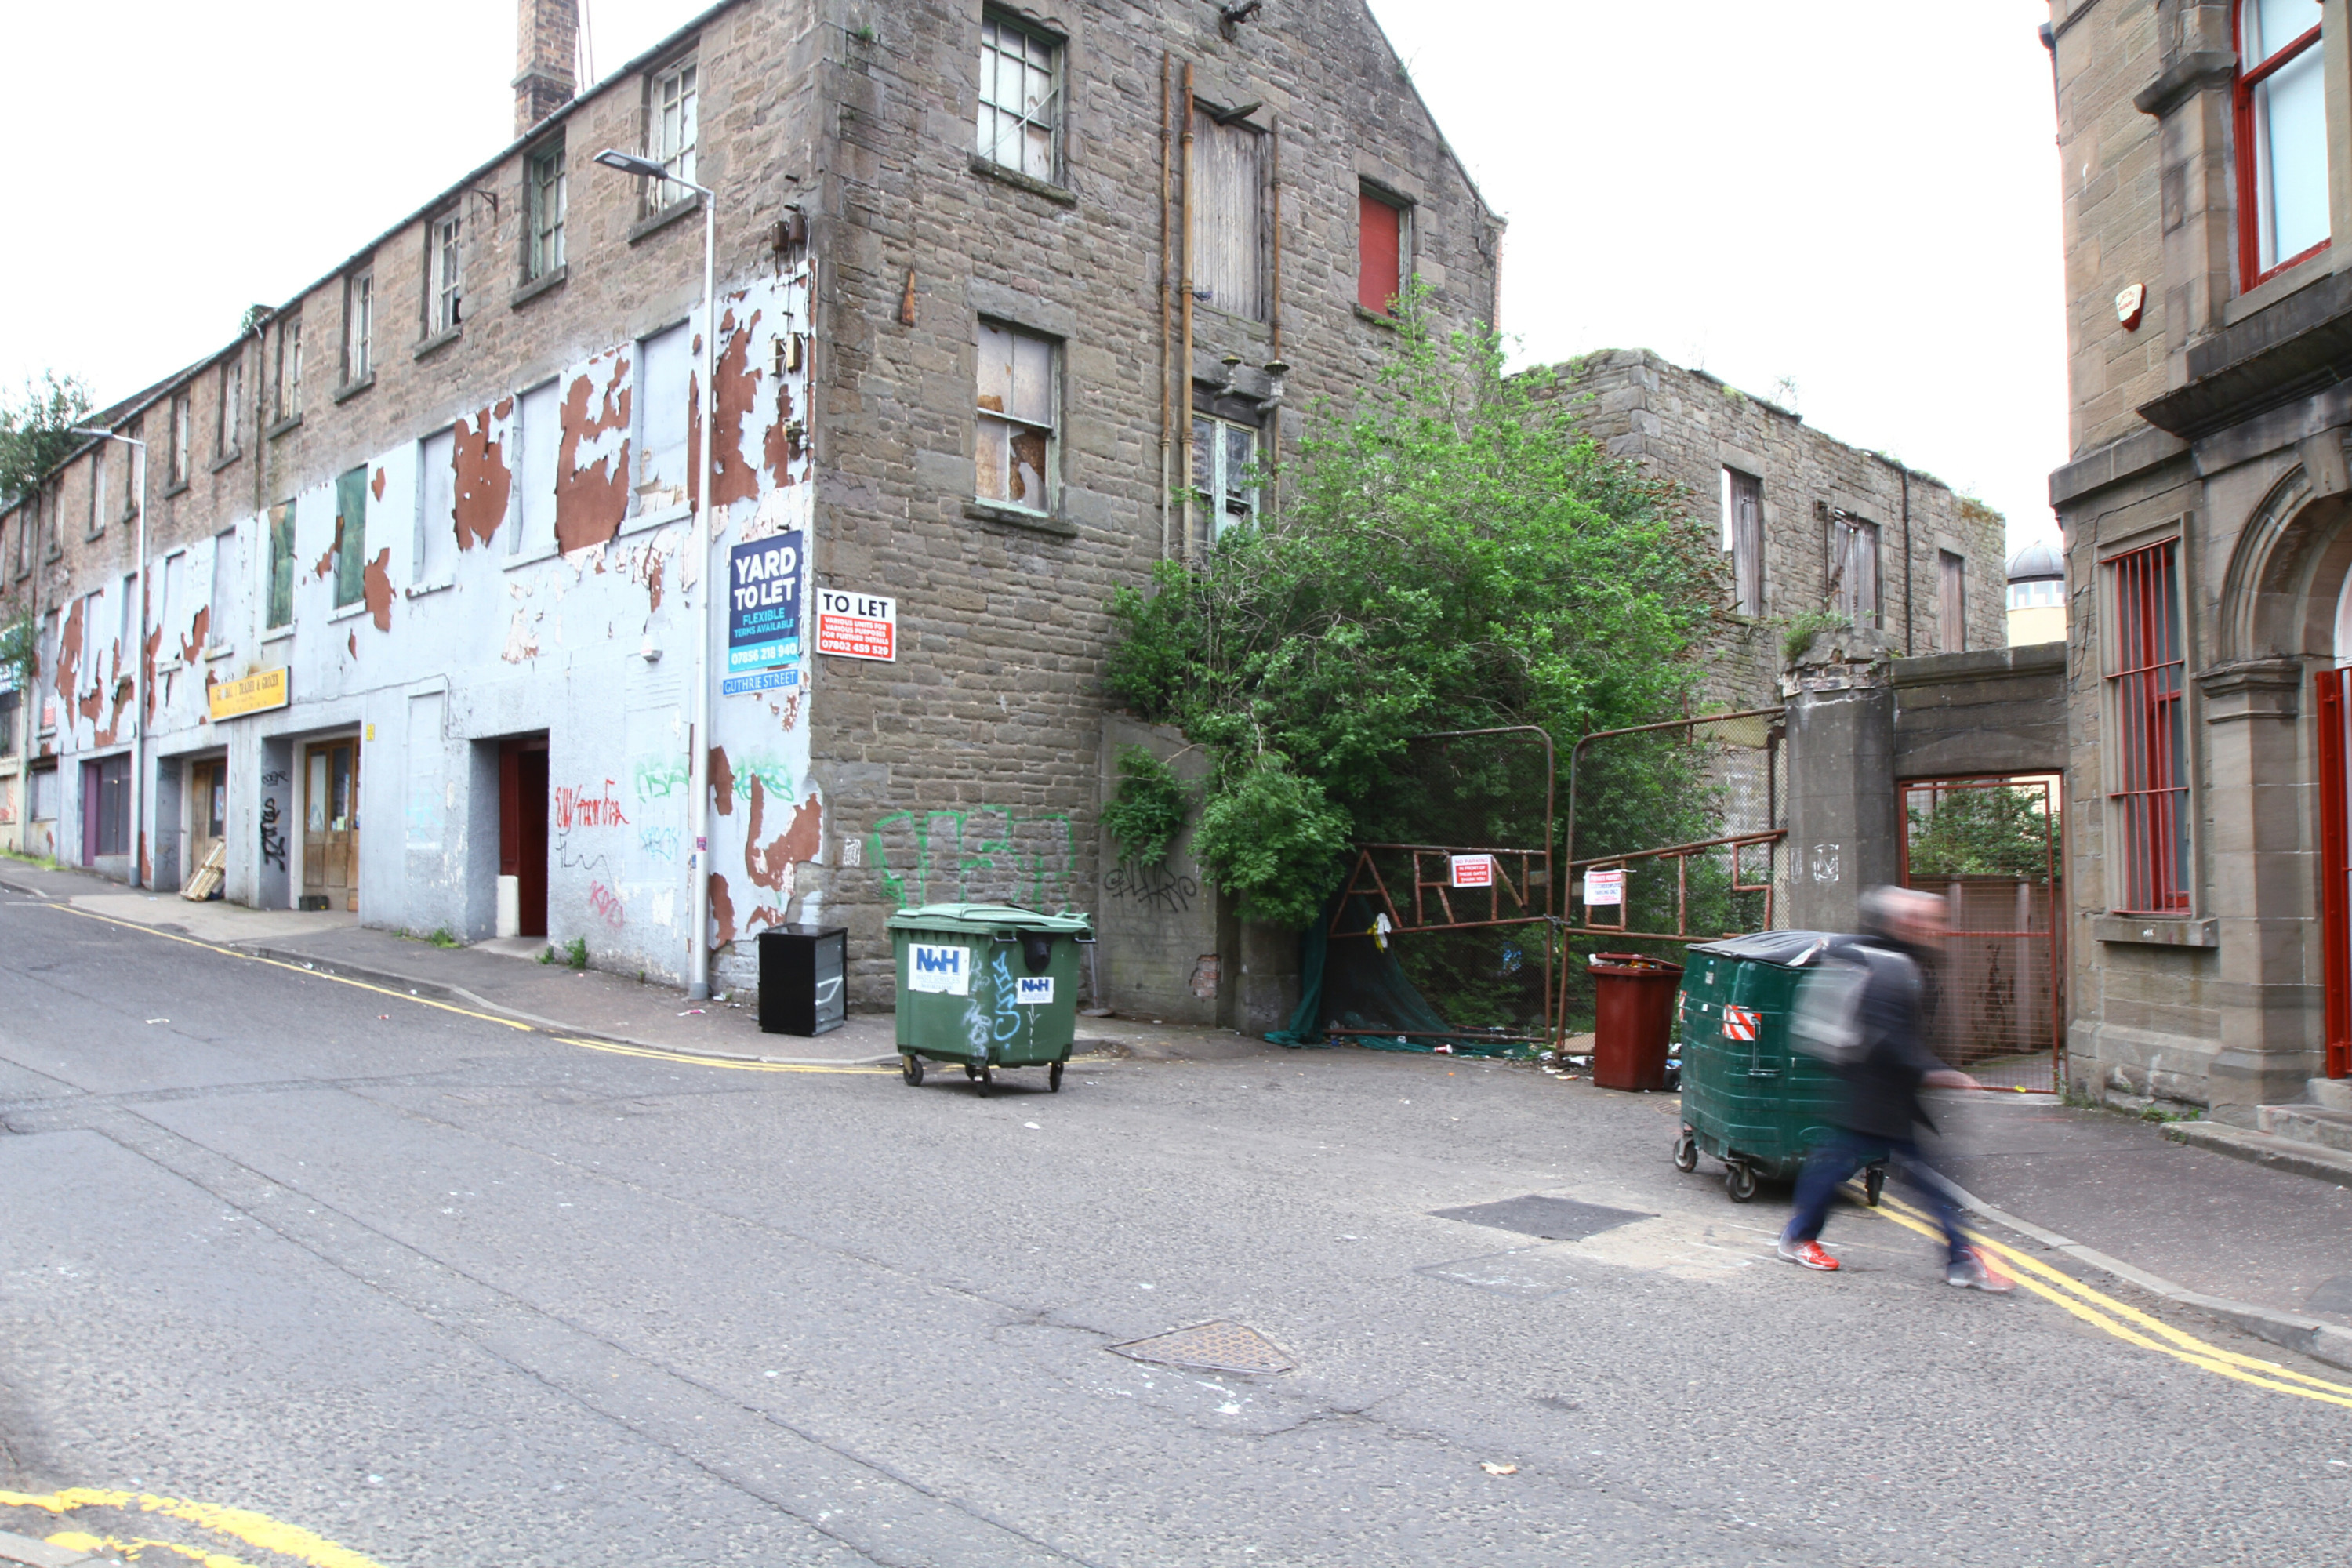 The disused site in Guthrie Street.